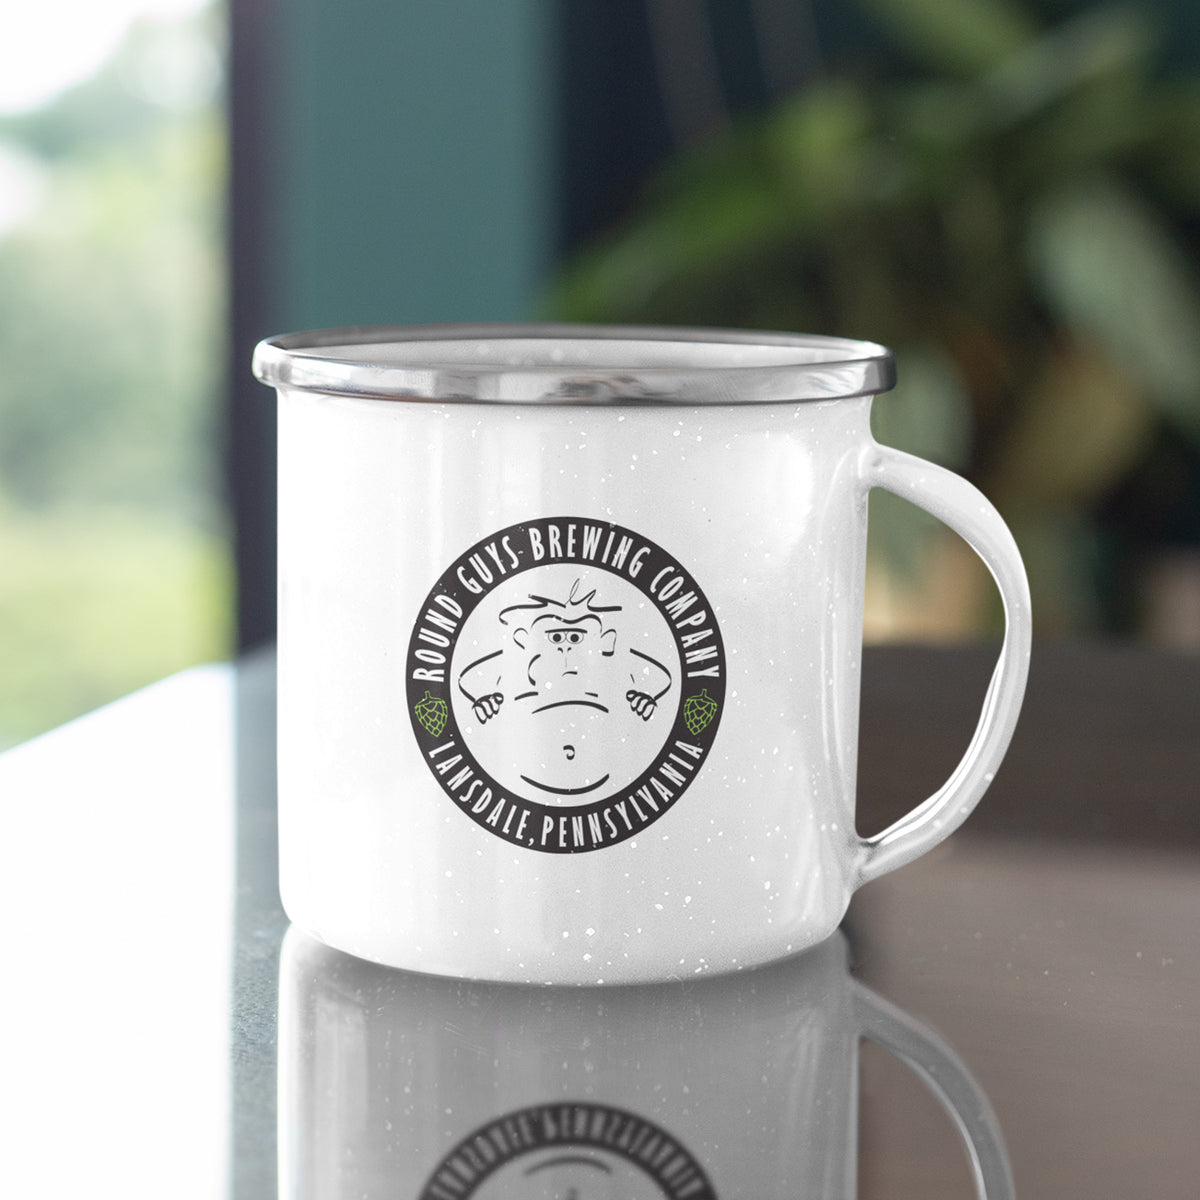 Round Guys Brewing We Support PA Camp Mug